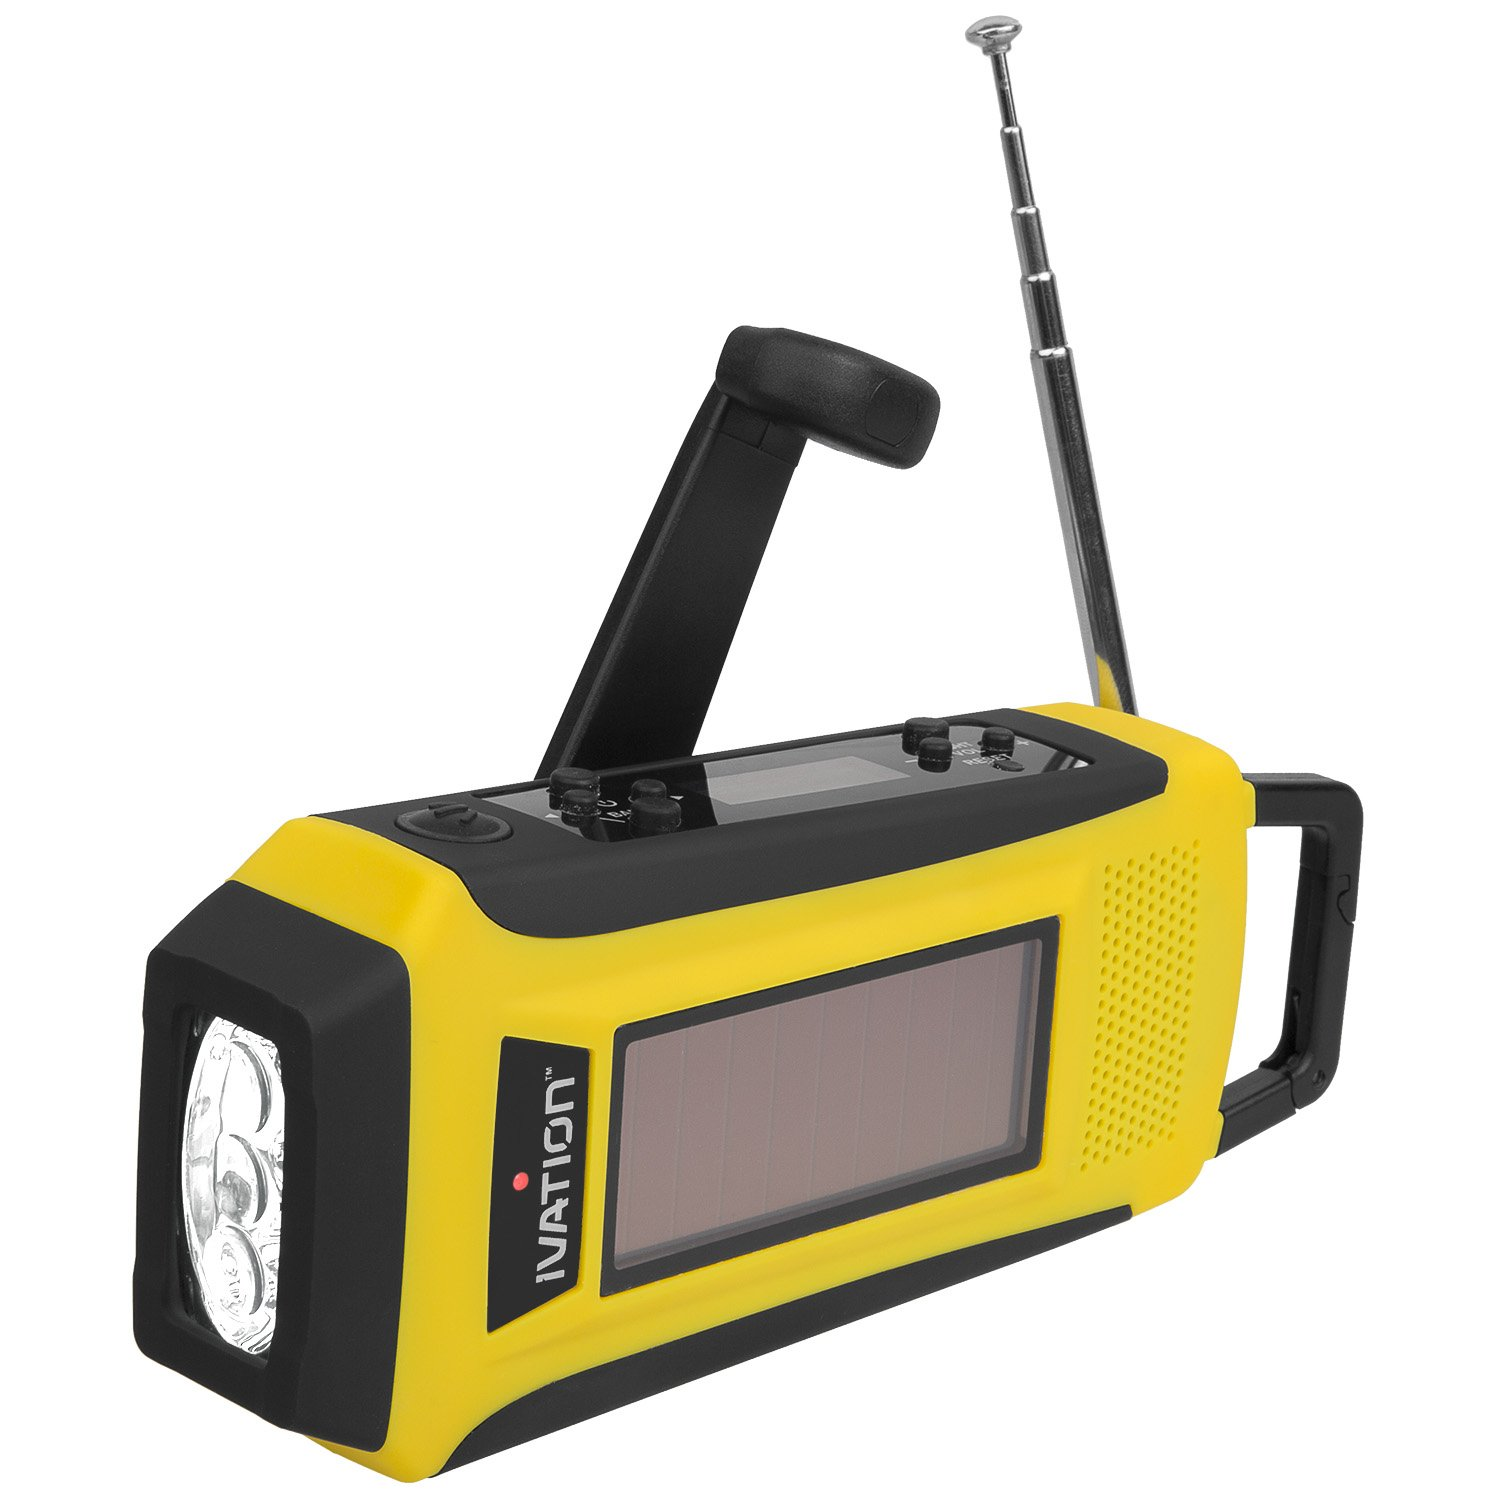 Ivation Hand Cranking, Solar or Battery Rechargeable Flashlight w/Emergency NOAA-Weather/AM/FM Radio - 3-Bulb LED Camping Torch and Cell Phone Charging Power-Bank - Cables Included, Yellow